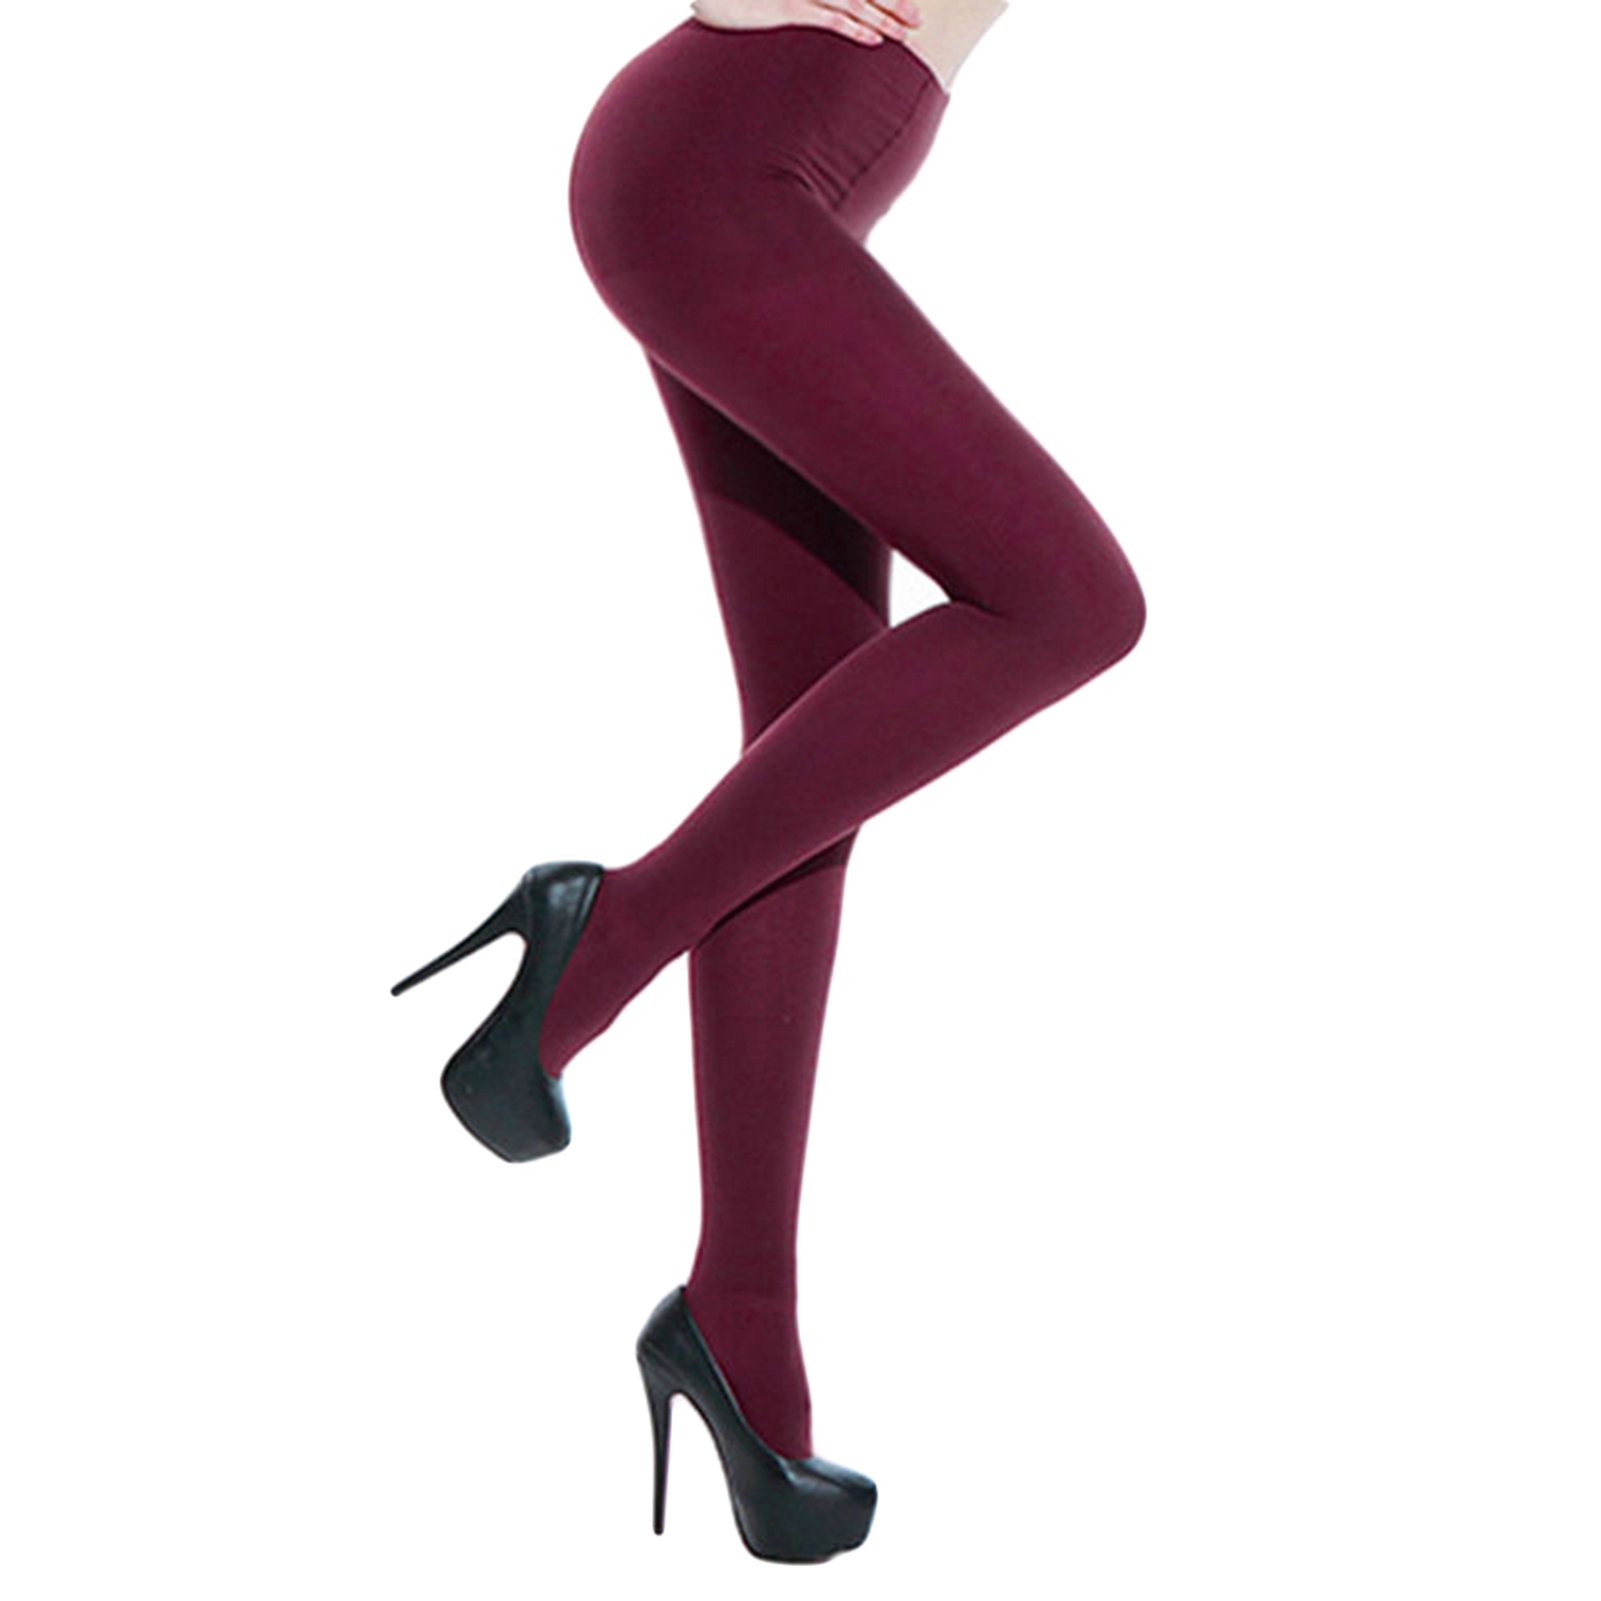 120D Colorful Women Fashion Tights Pantyhose Winter Warm Stockings Socks Hosiery Clothing, Shoes & Accessories